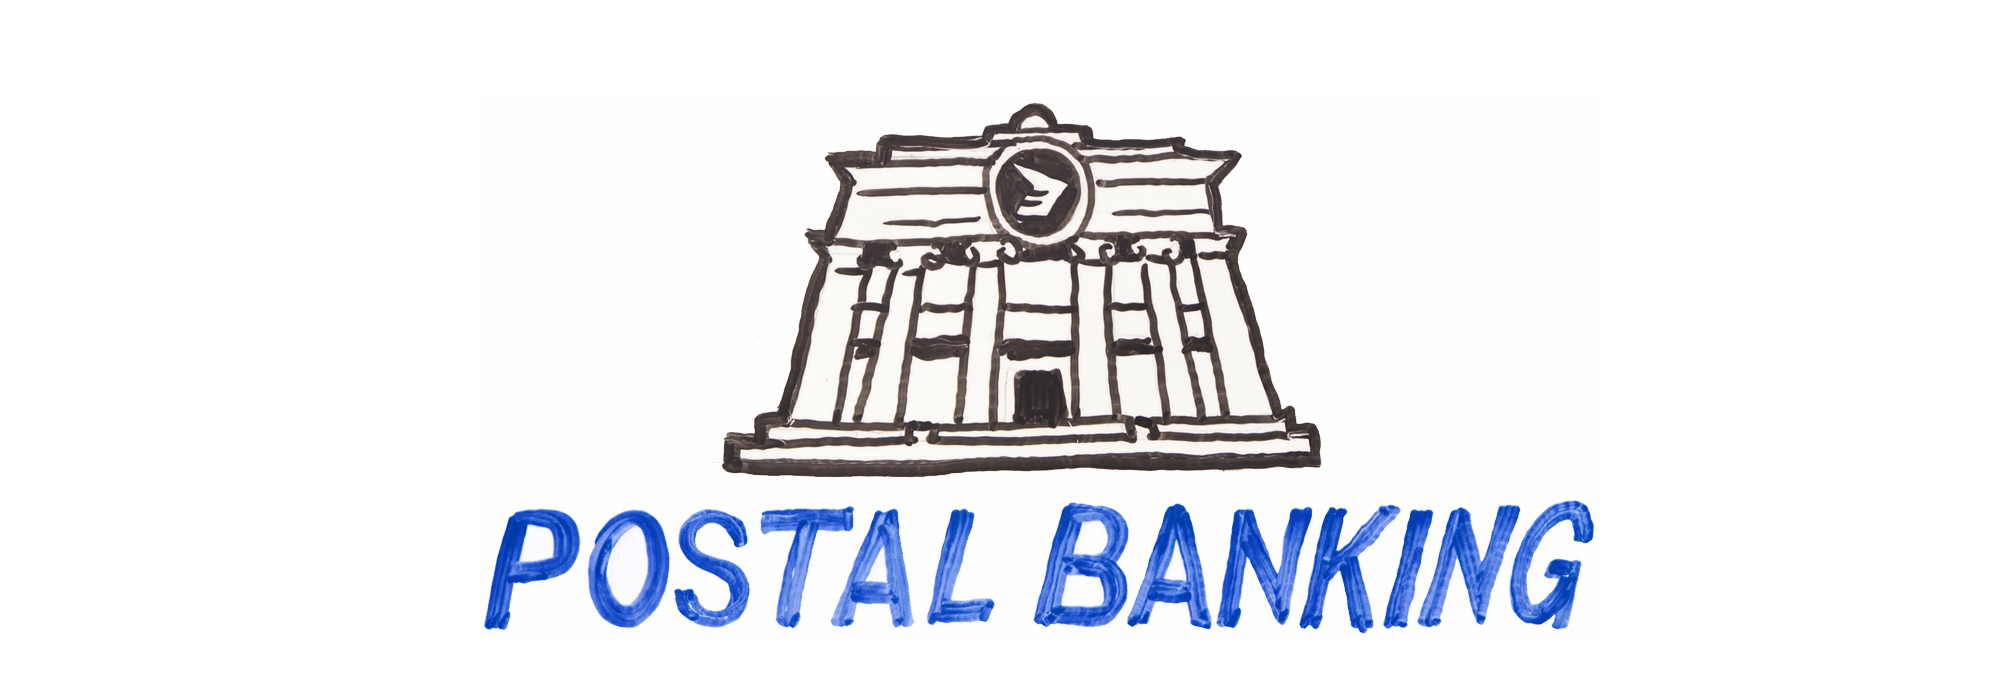 Whiteboard illustration of a postal bank with the words POSTAL BANKING written underneath